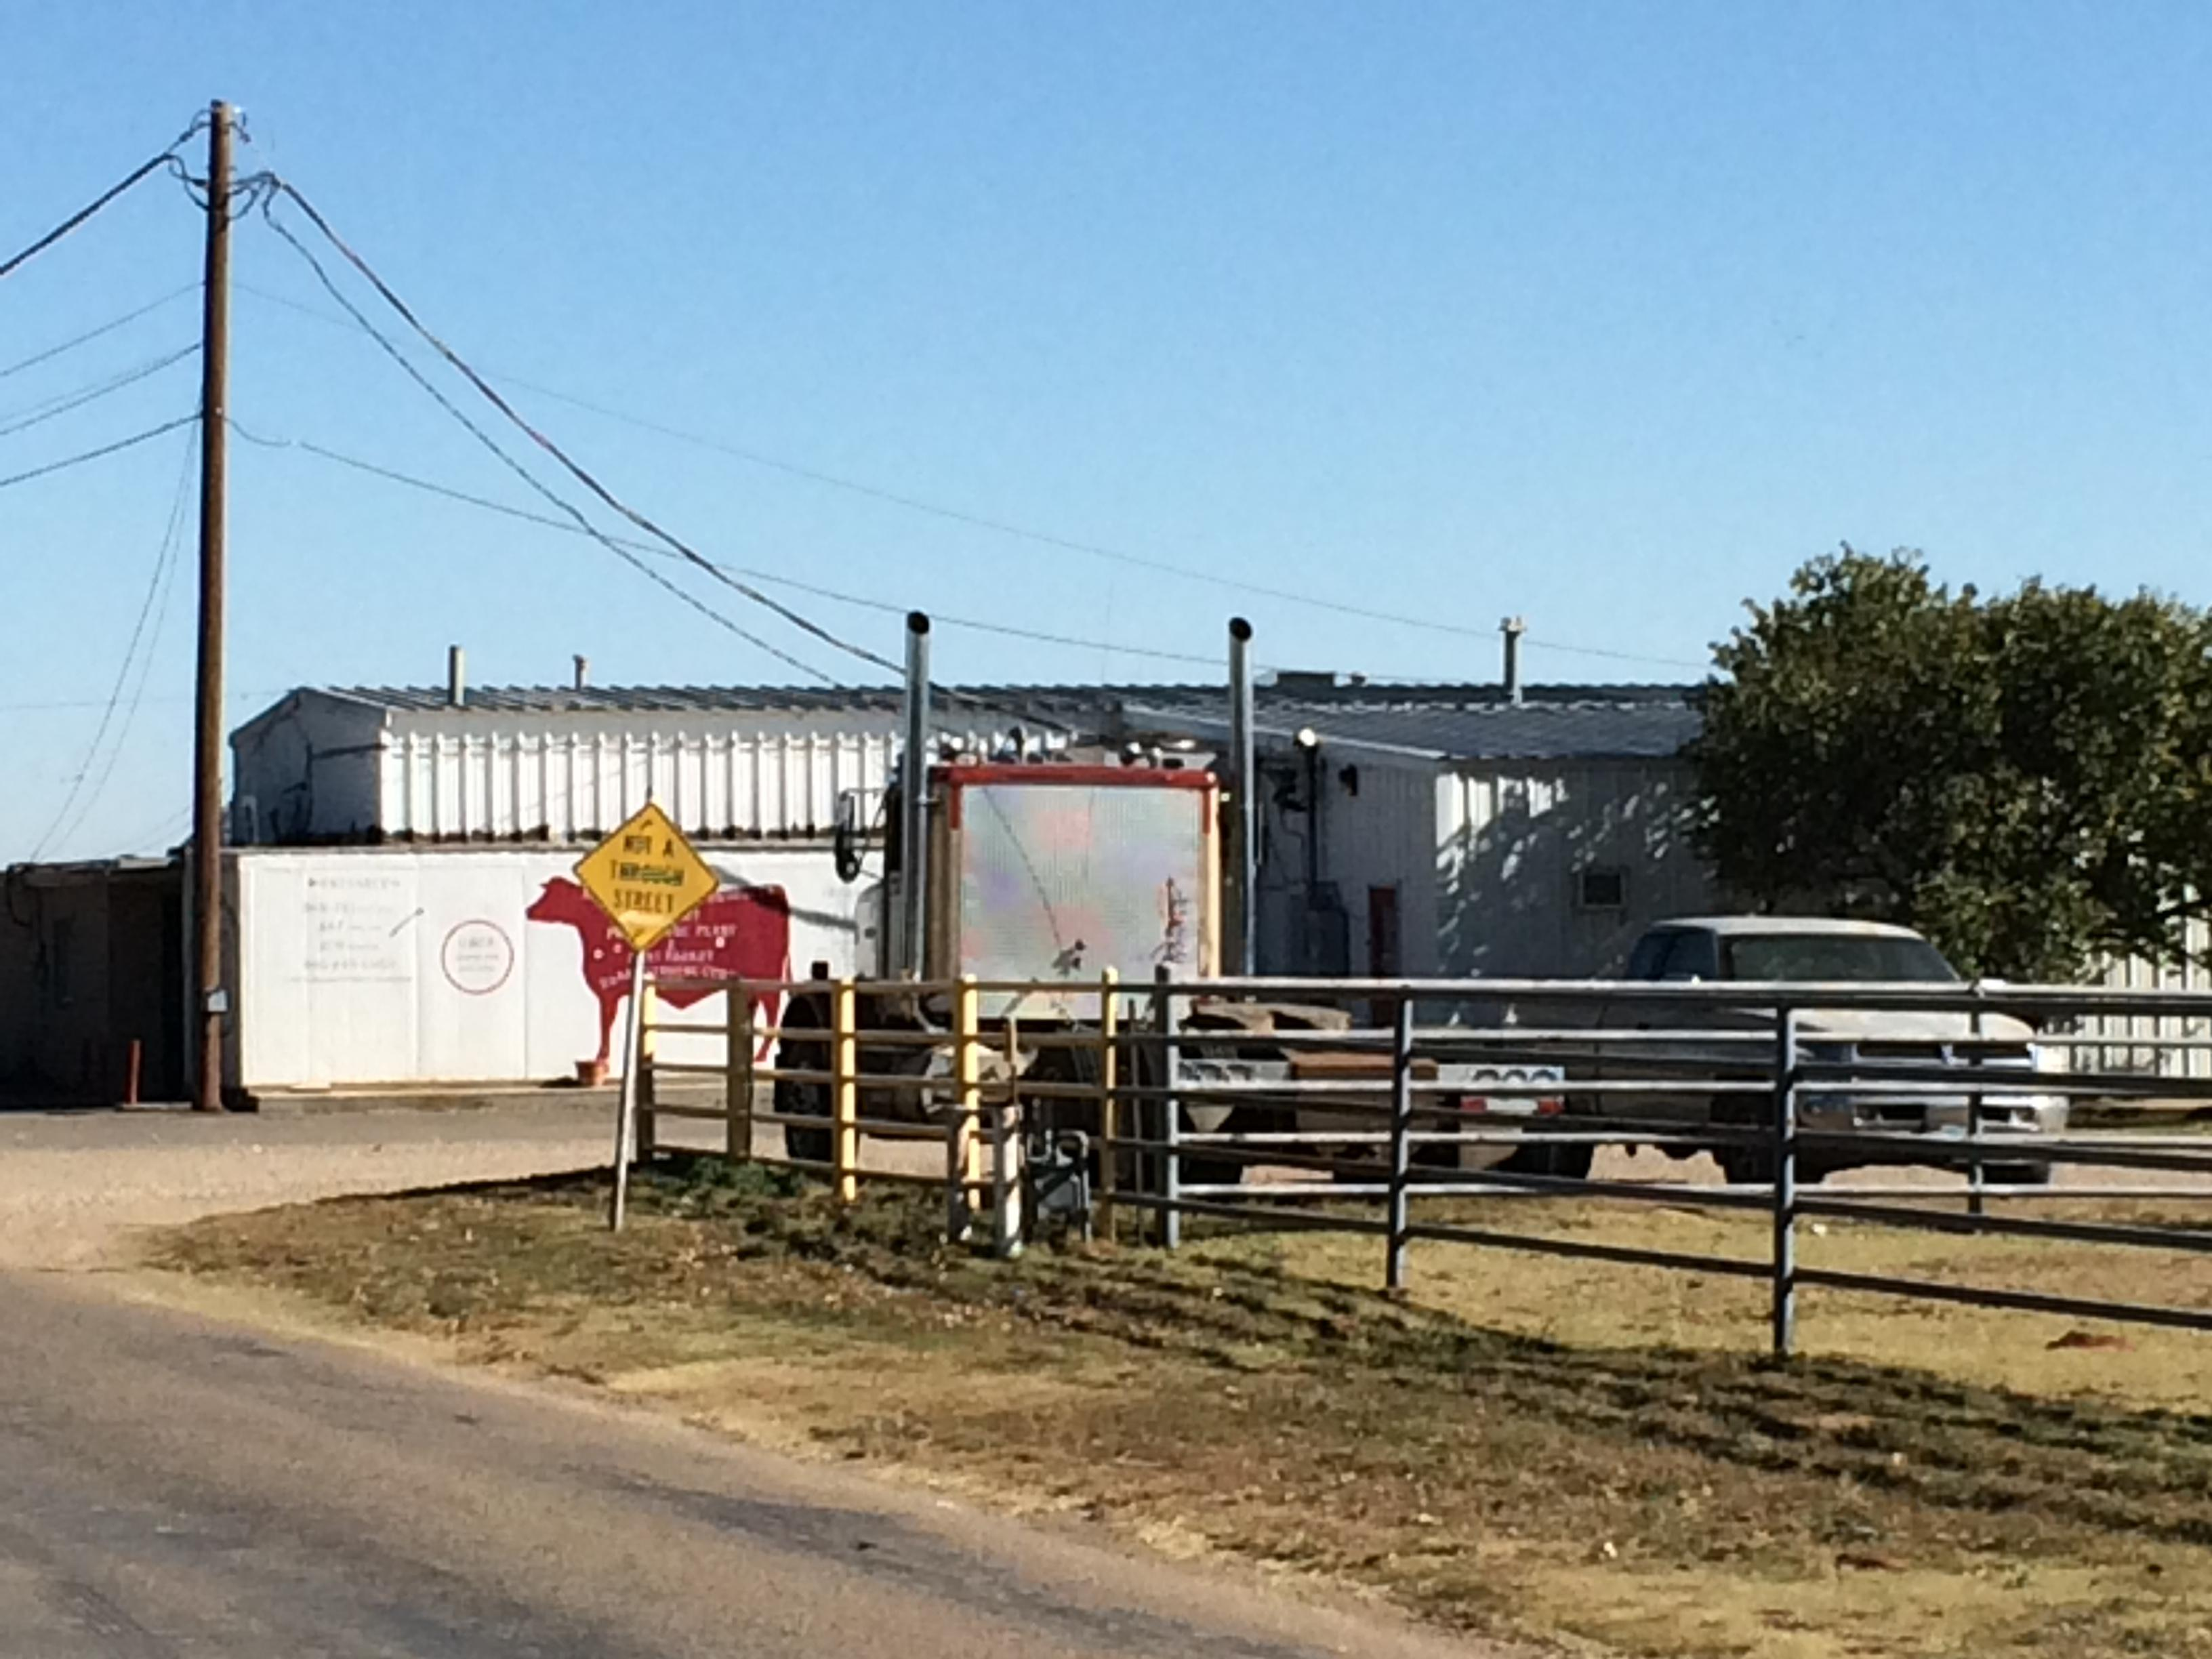 Local, state and federal law enforcement agencies search the Dalhart Processing Plant. (ABC 7 Amarillo-Drew Powell)<p></p>